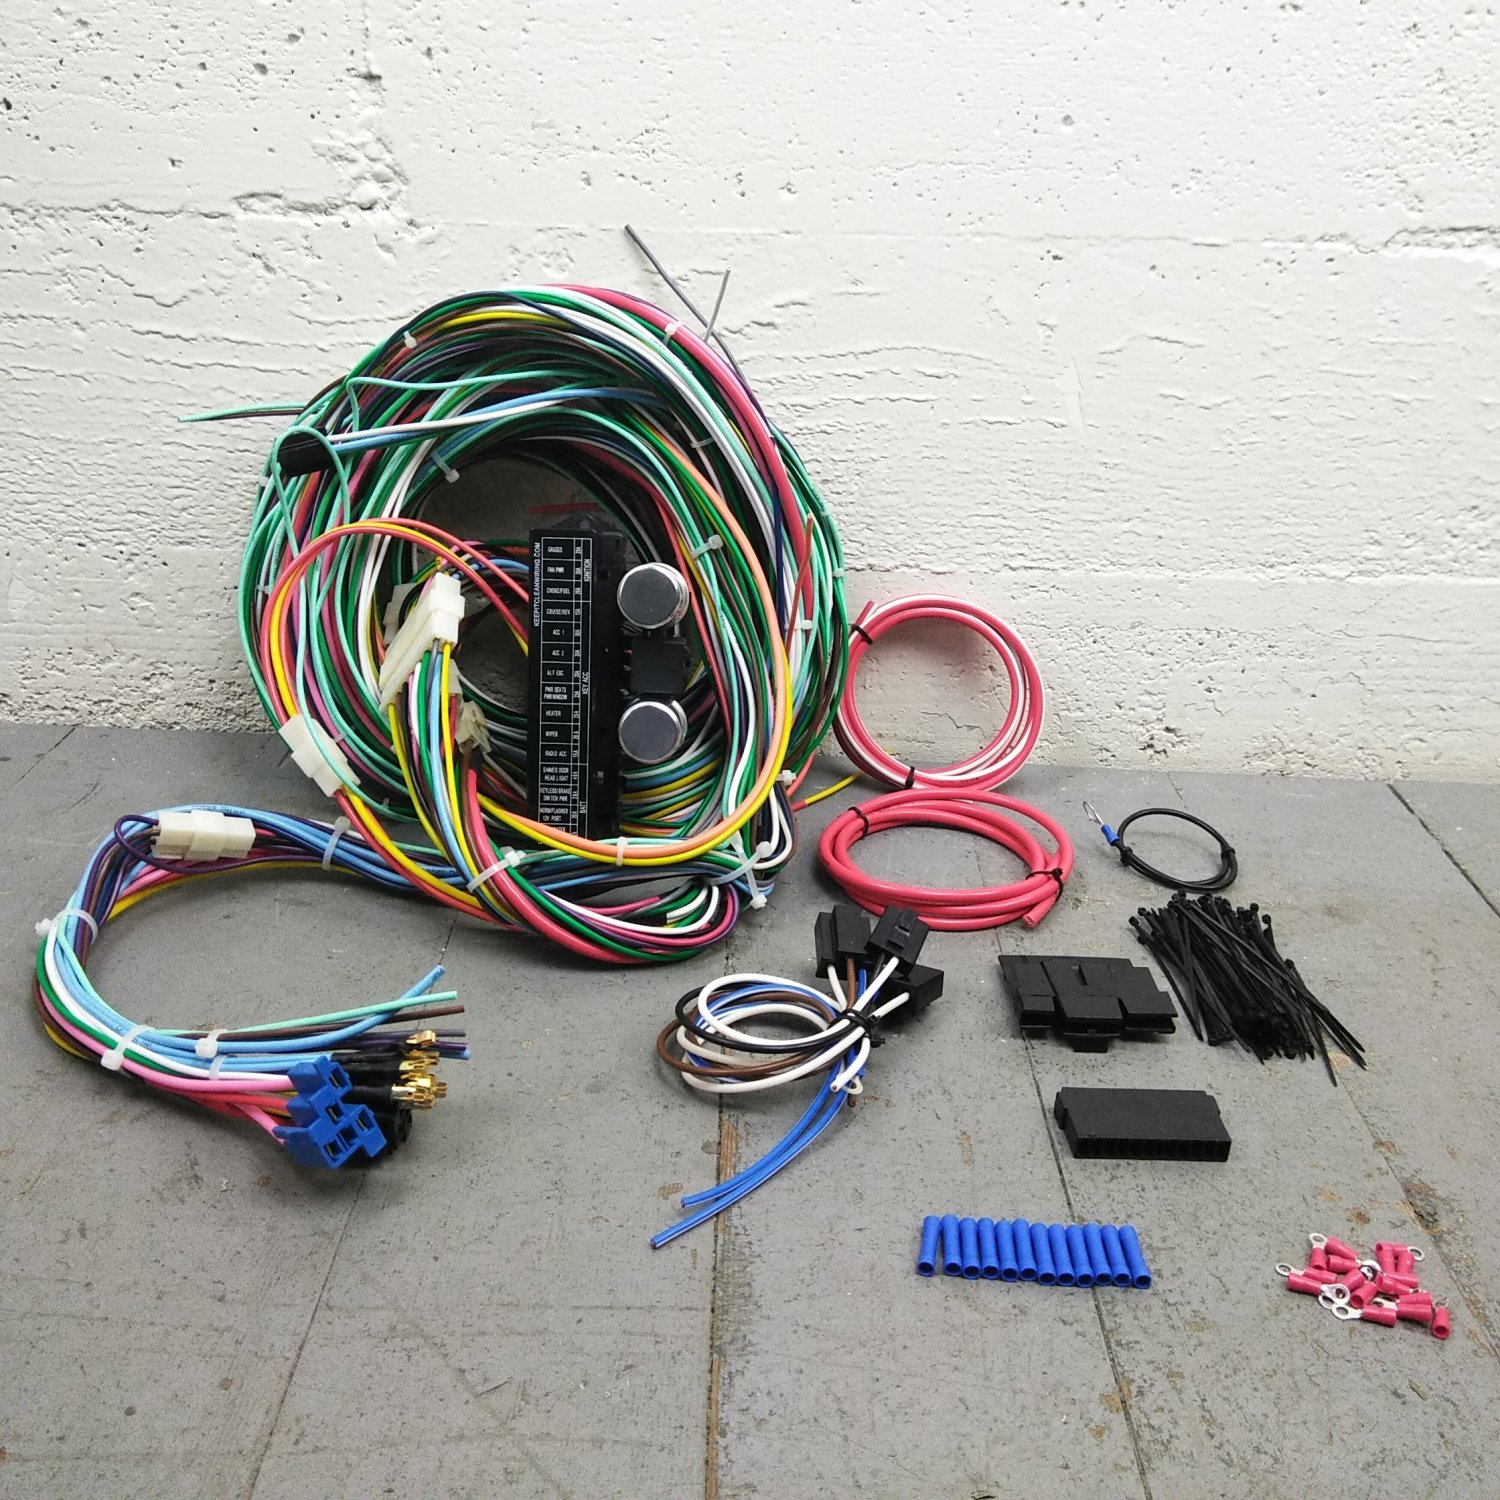 hight resolution of 1967 1969 chevrolet camaro wire harness upgrade kit fits painless terminal new bar product description c